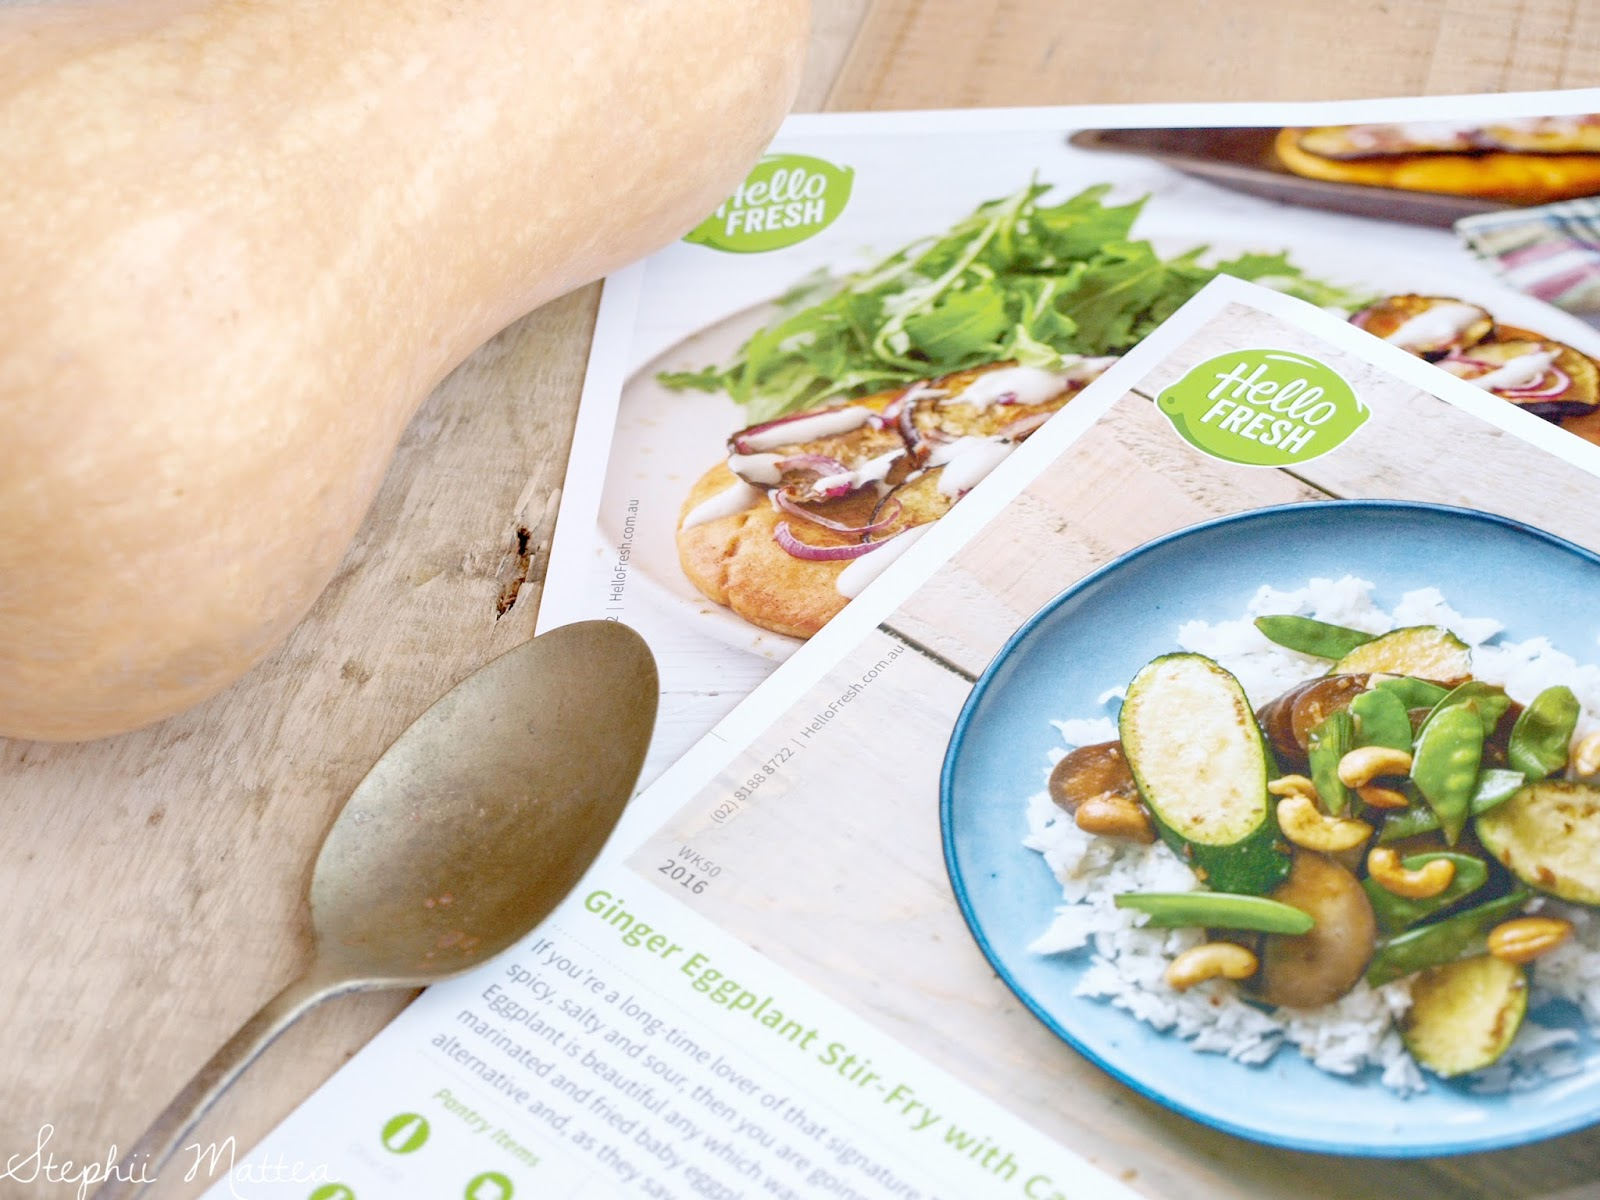 Meal Kit Delivery Service  Hellofresh Best Deals 2020